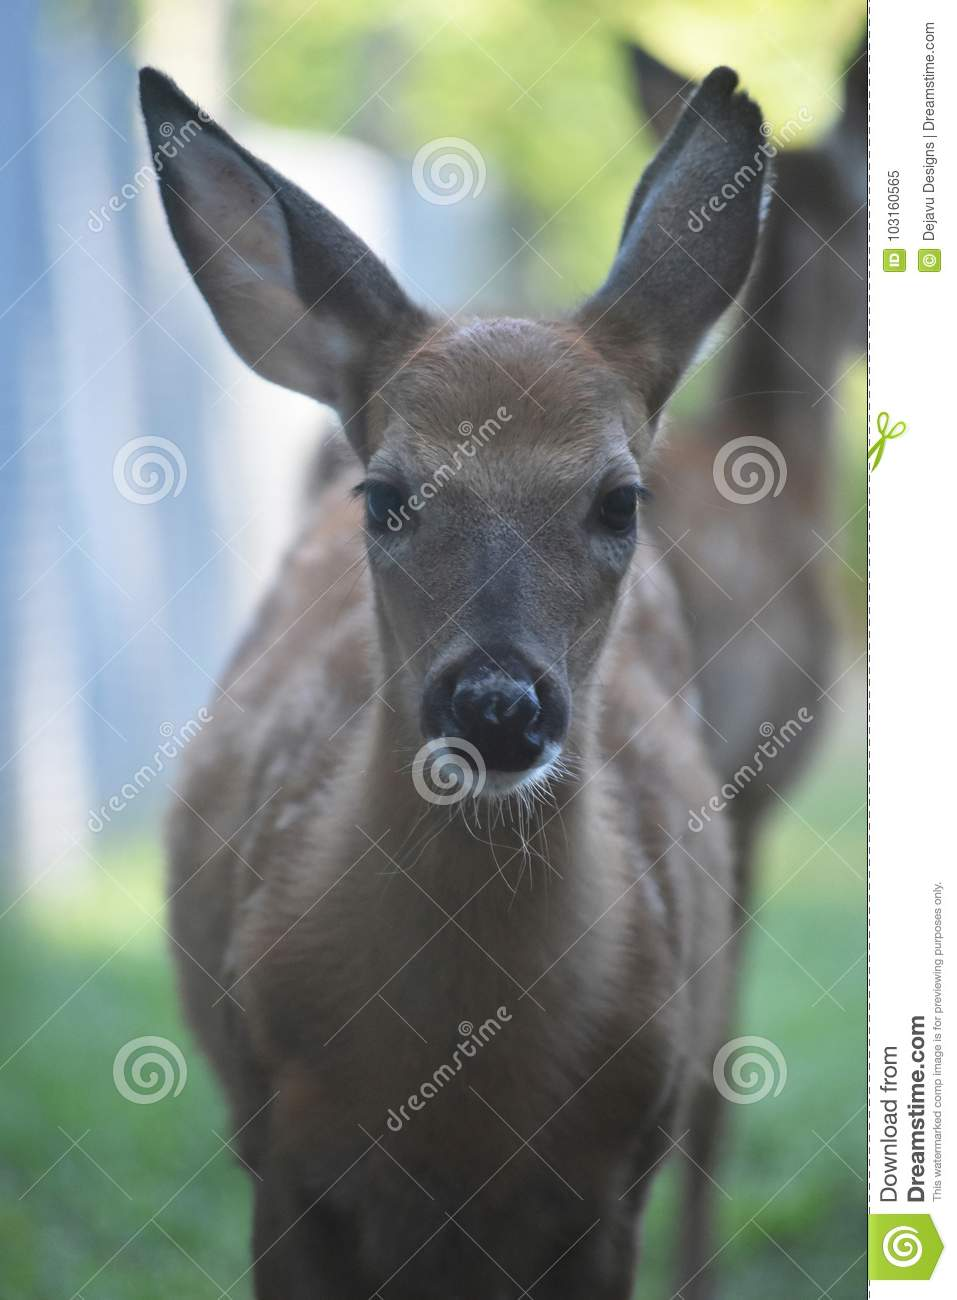 Cute white tailed deer looking at the camera